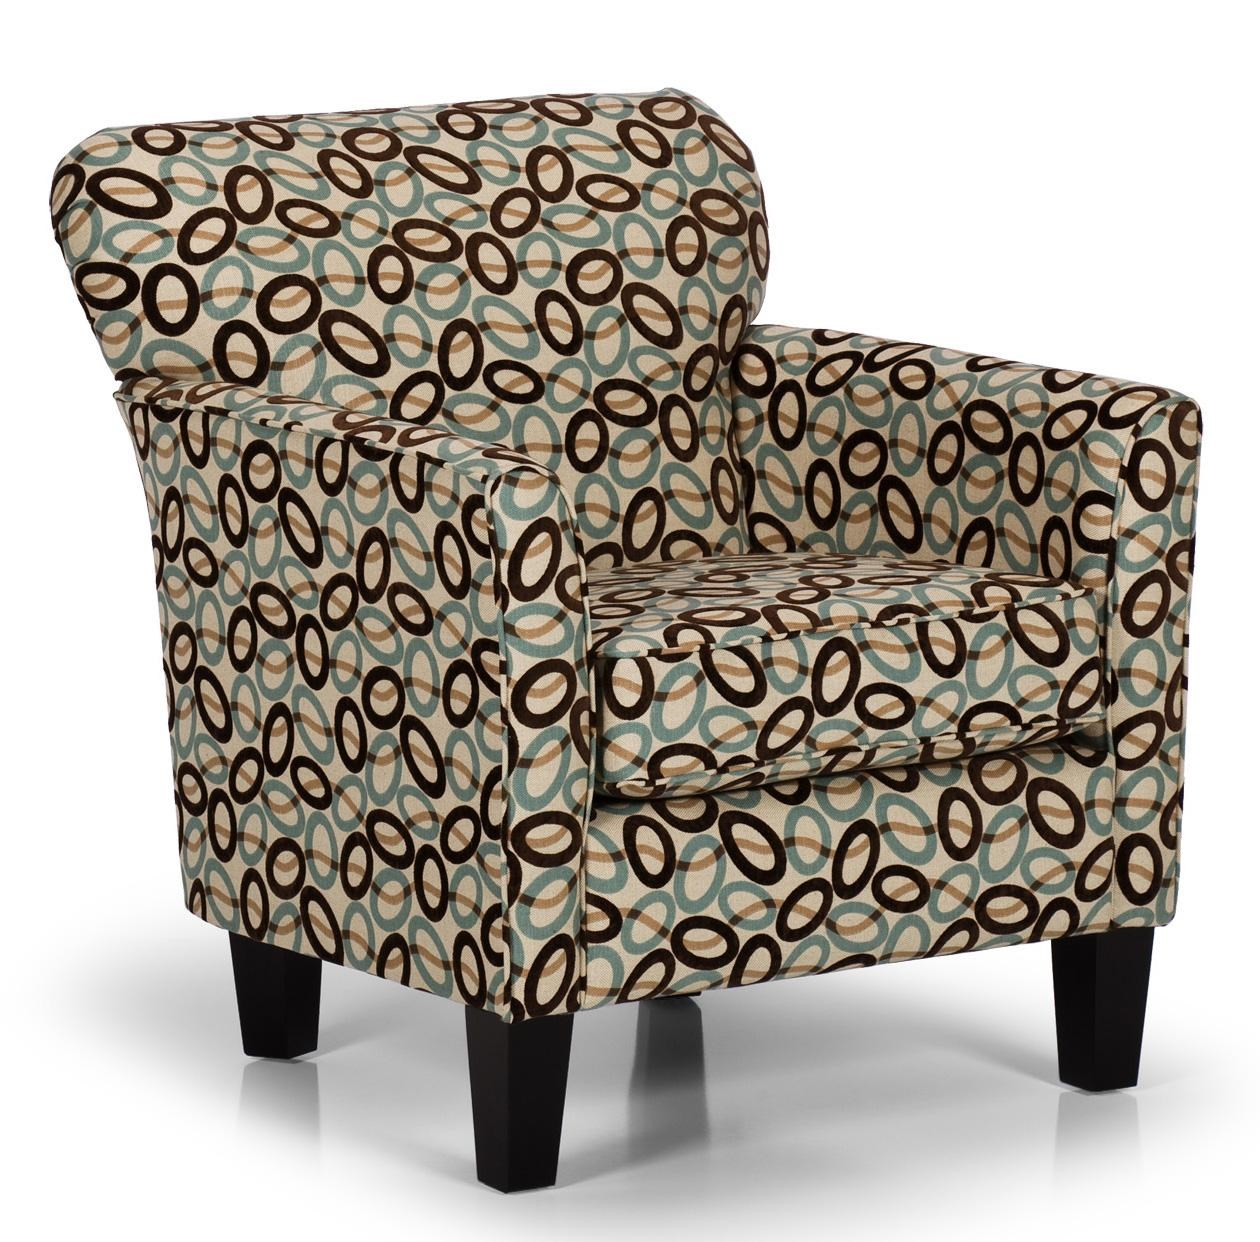 Stanton Accent Chairs and Ottomans Contemporary Accent Chair with Flared Arms - Wilsonu0026#39;s ...